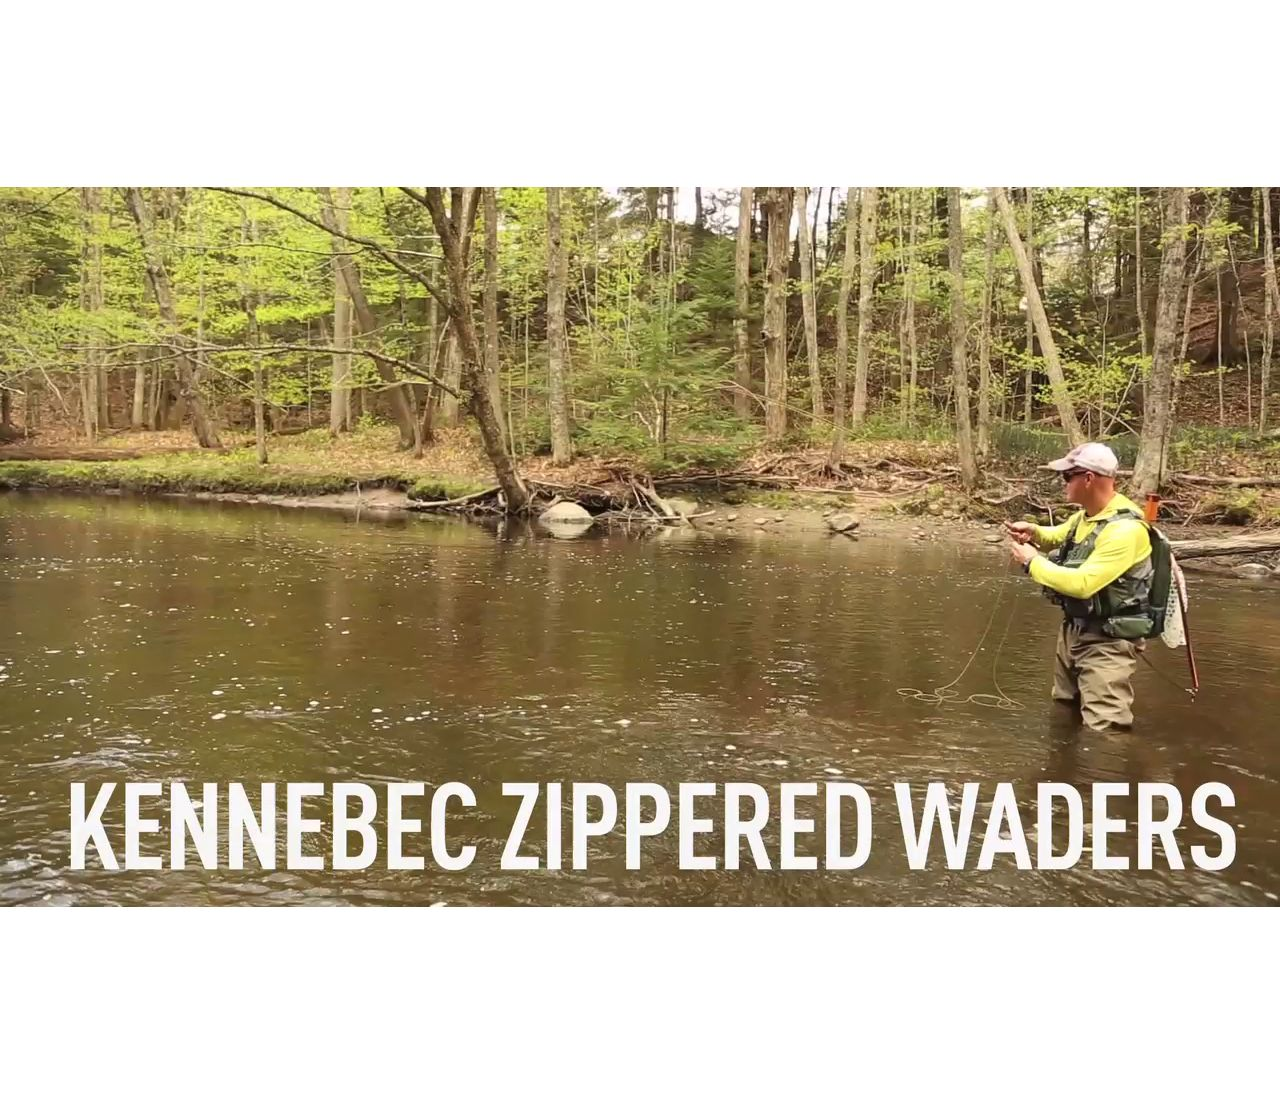 Video: Kennebec Waders with Superseam Technology, Zippered-Chest Stocking Foot